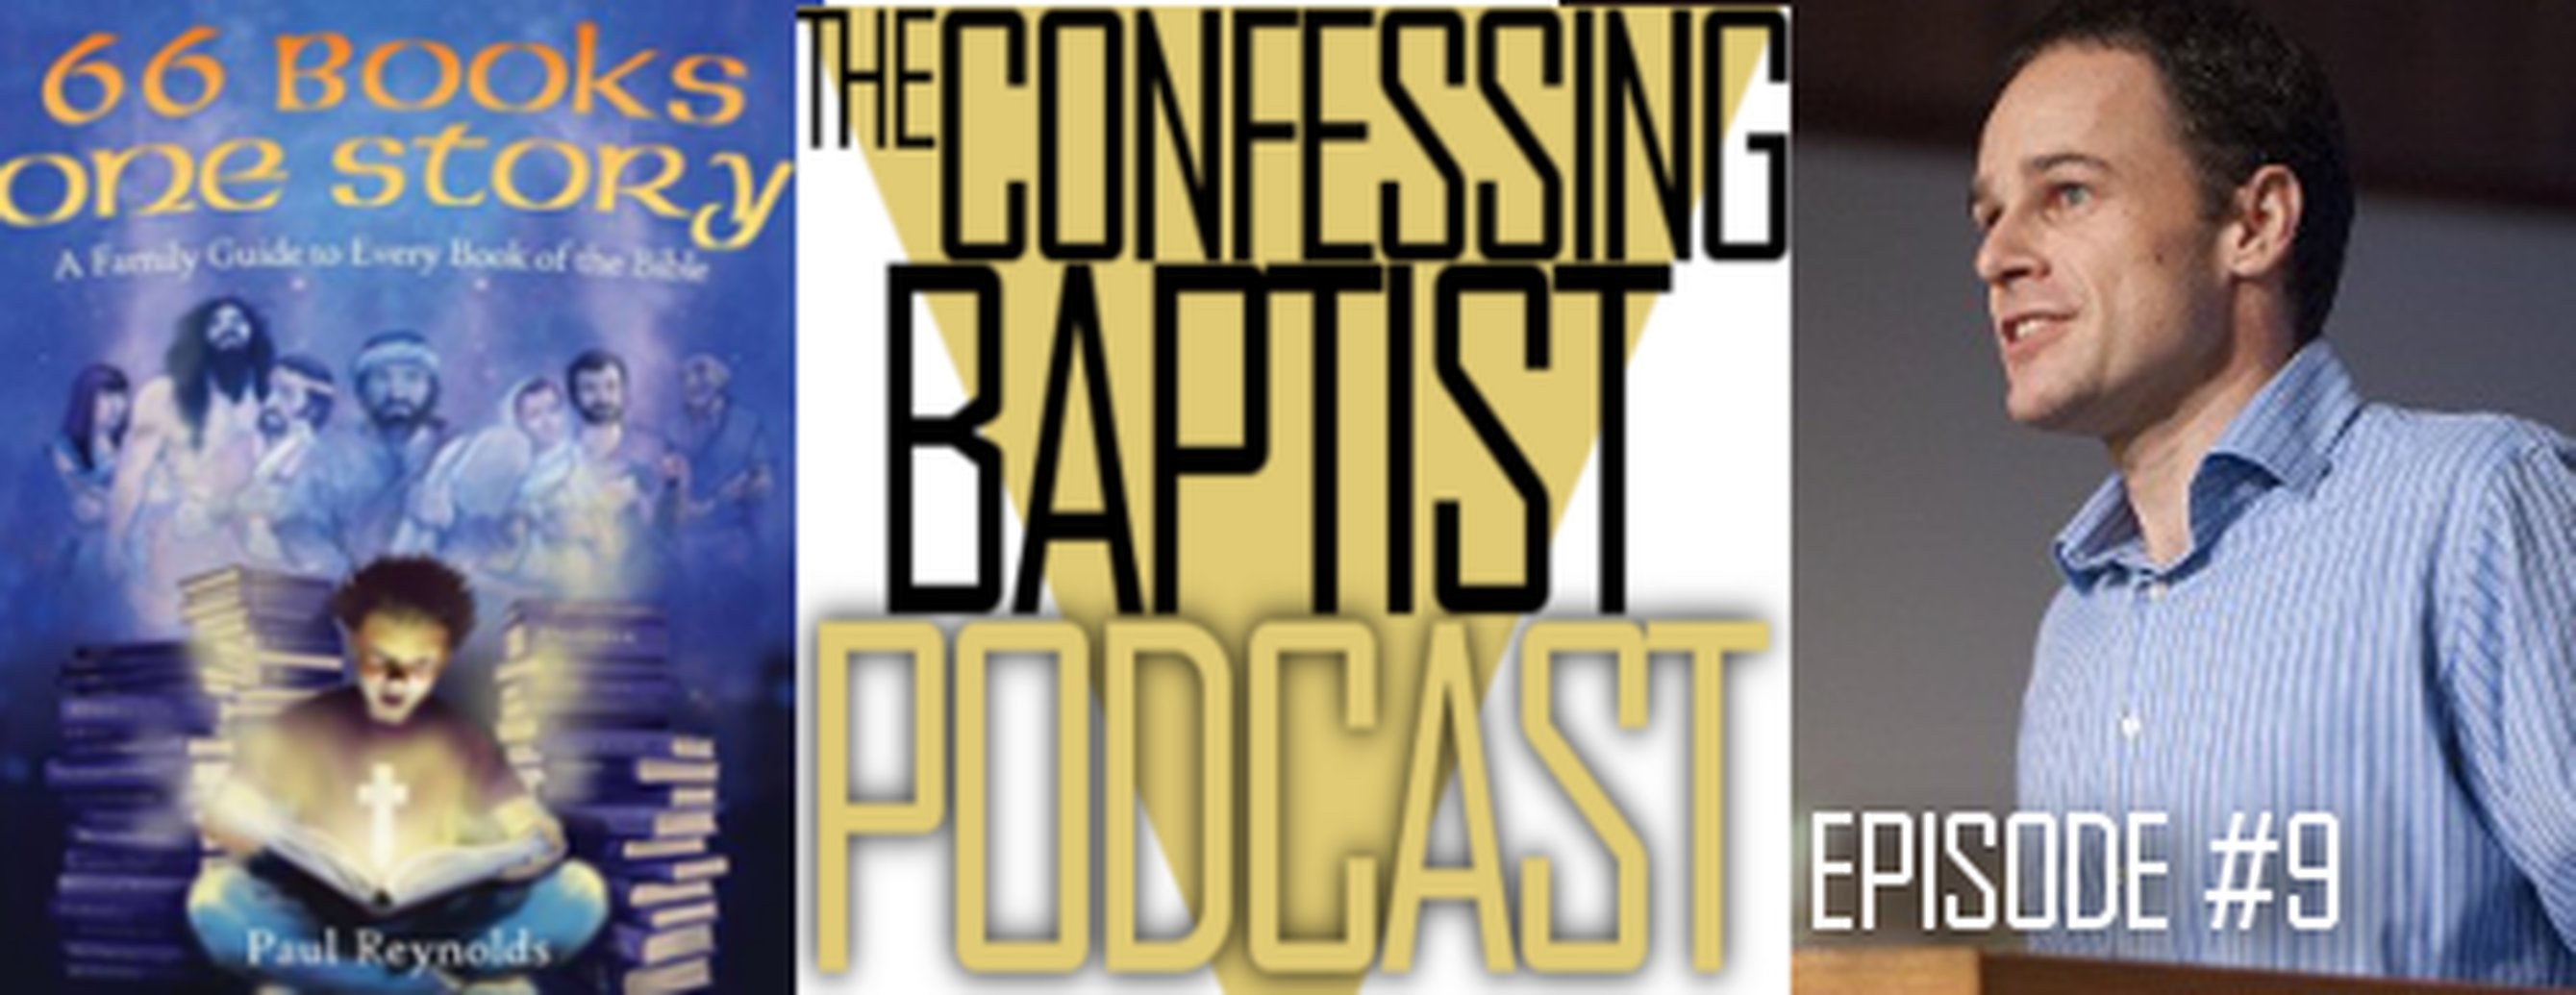 Paul Reynolds Interviewed on The Confessing Baptist Podcast